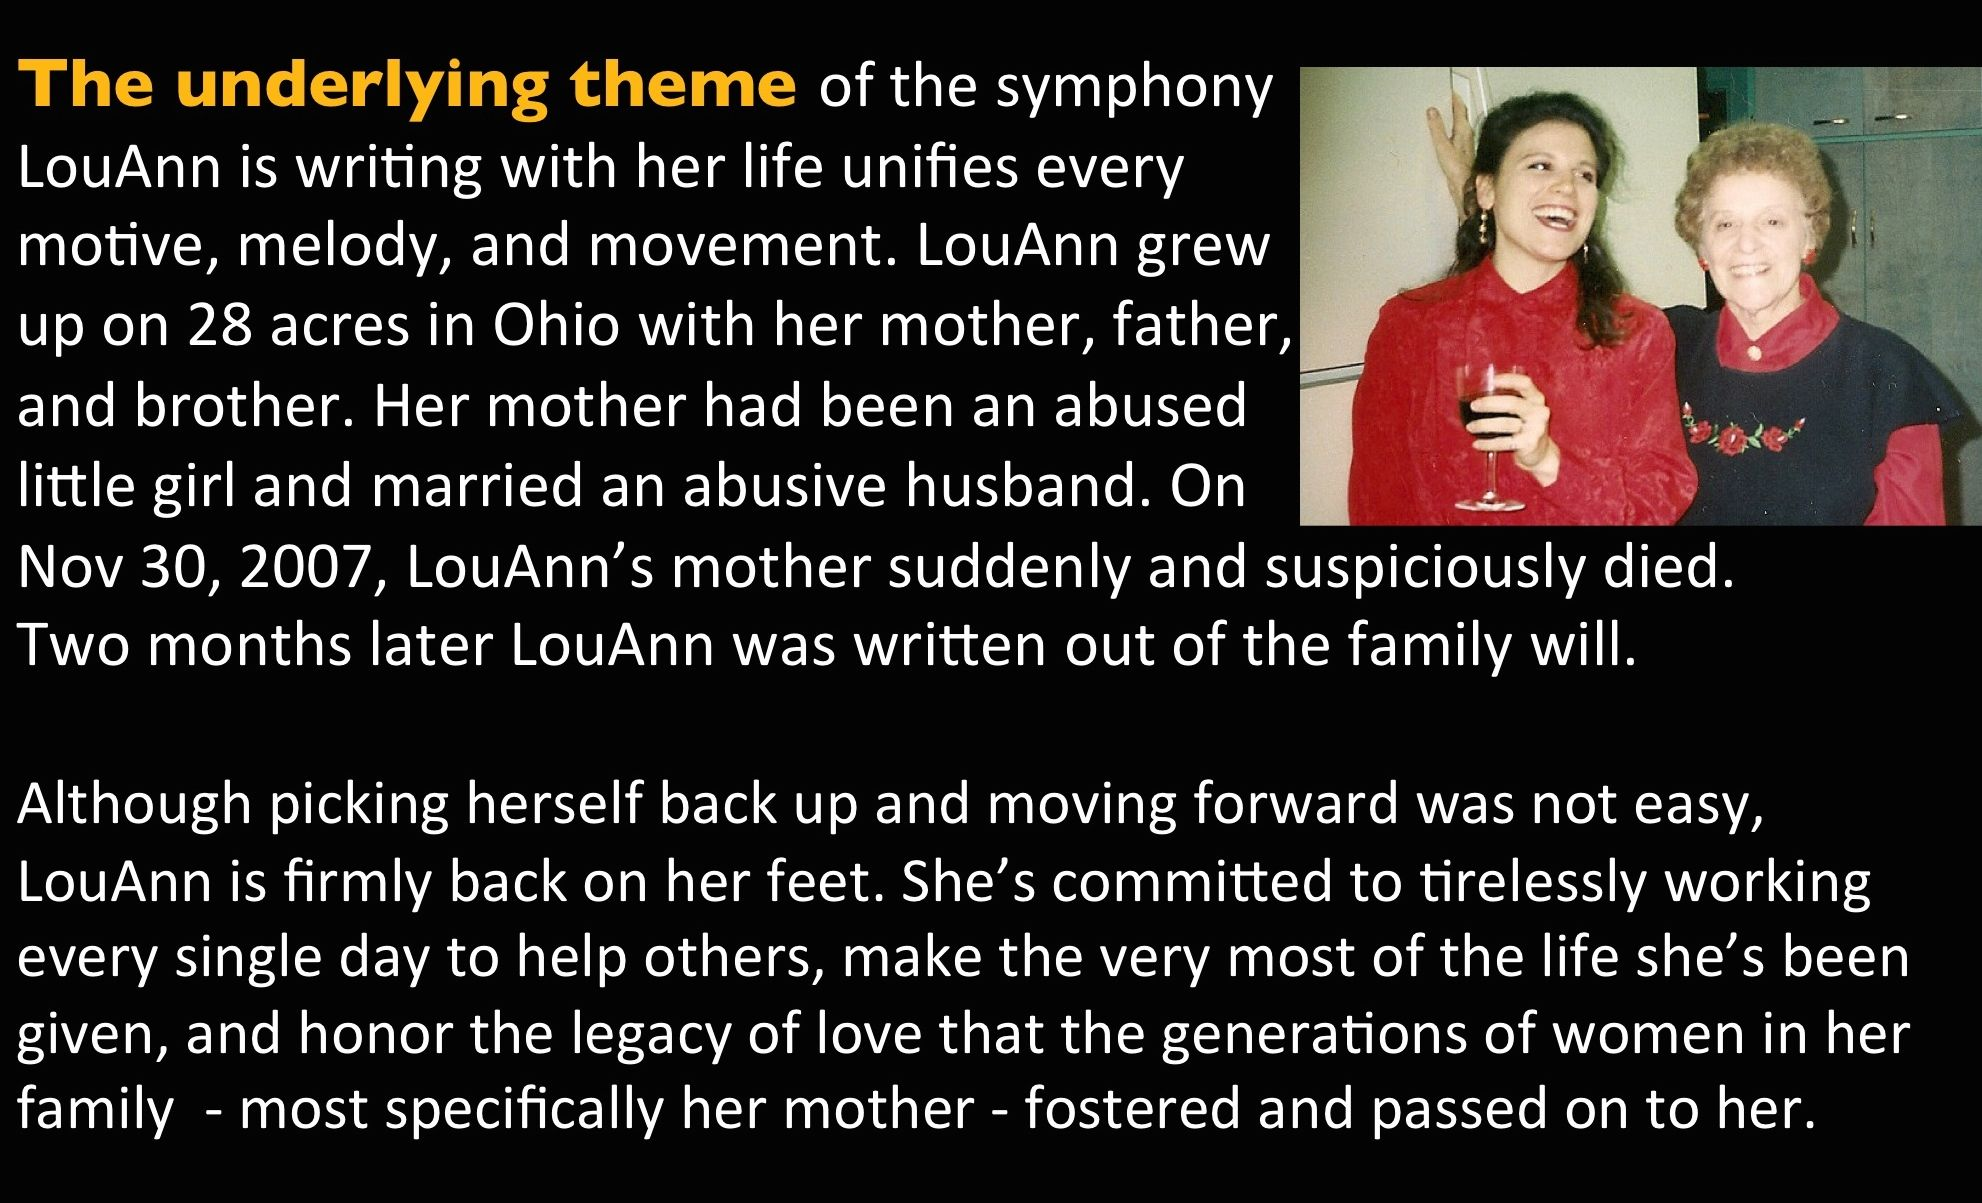 LouAnn_underlying_theme